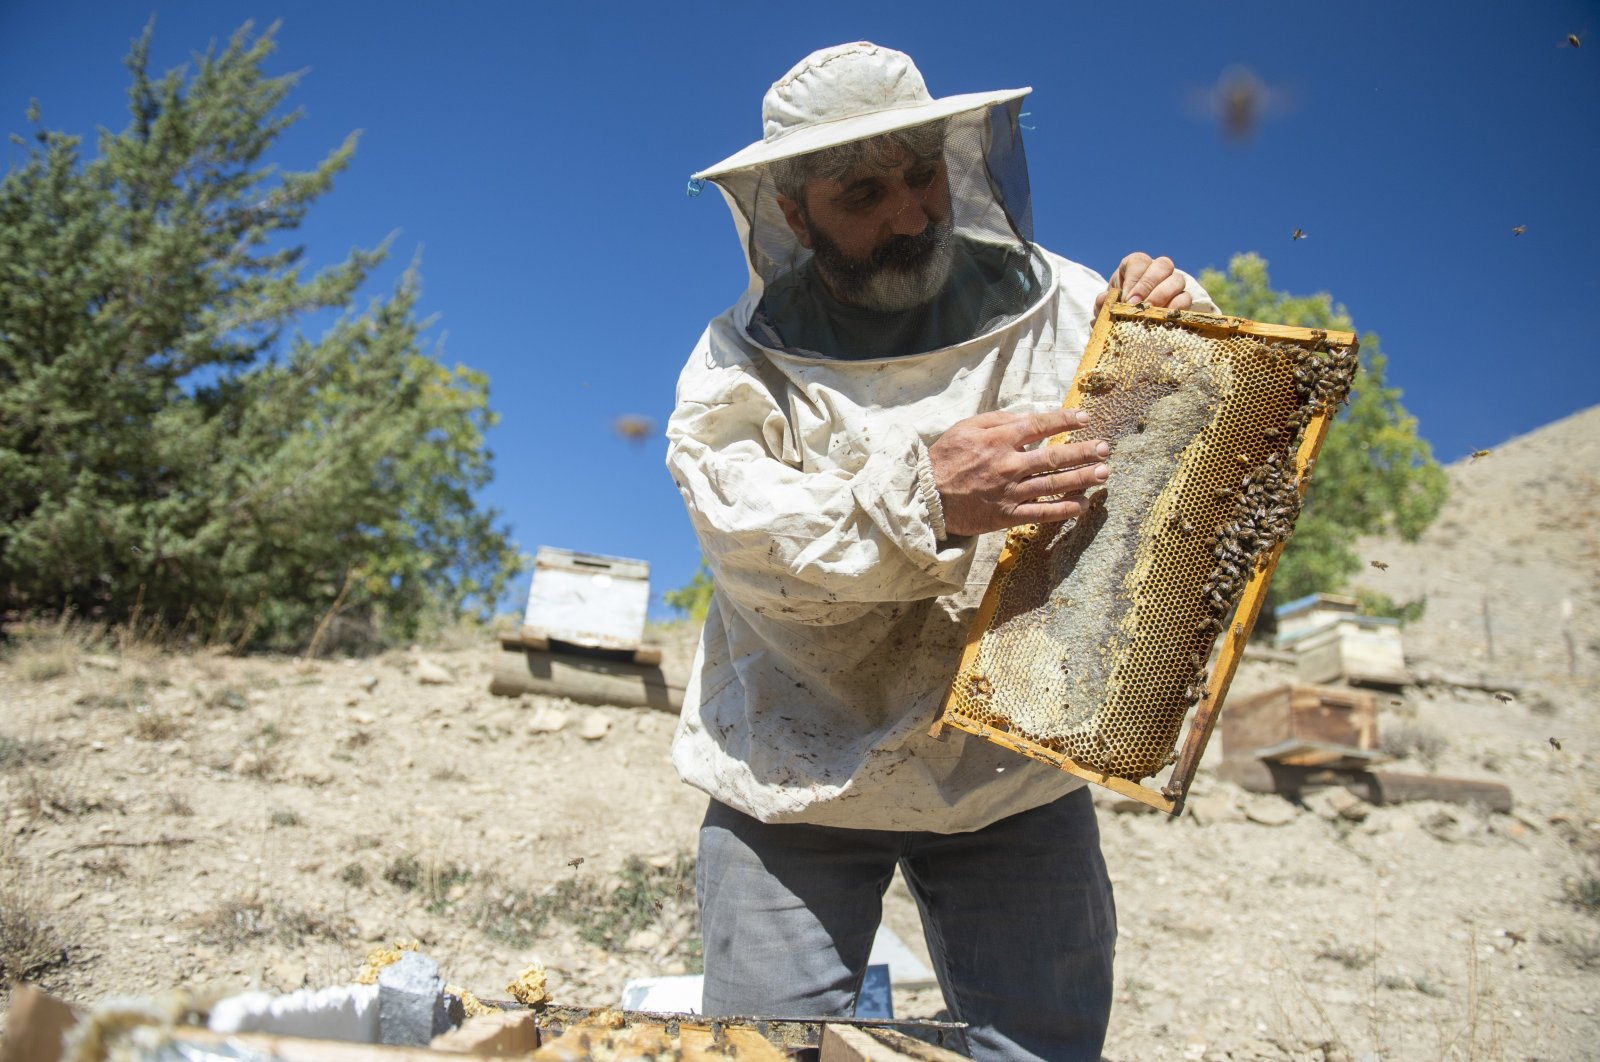 Caner Canerik tends to his beehives, in Tunceli, eastern Turkey, Oct. 10, 2021. (AA PHOTO)